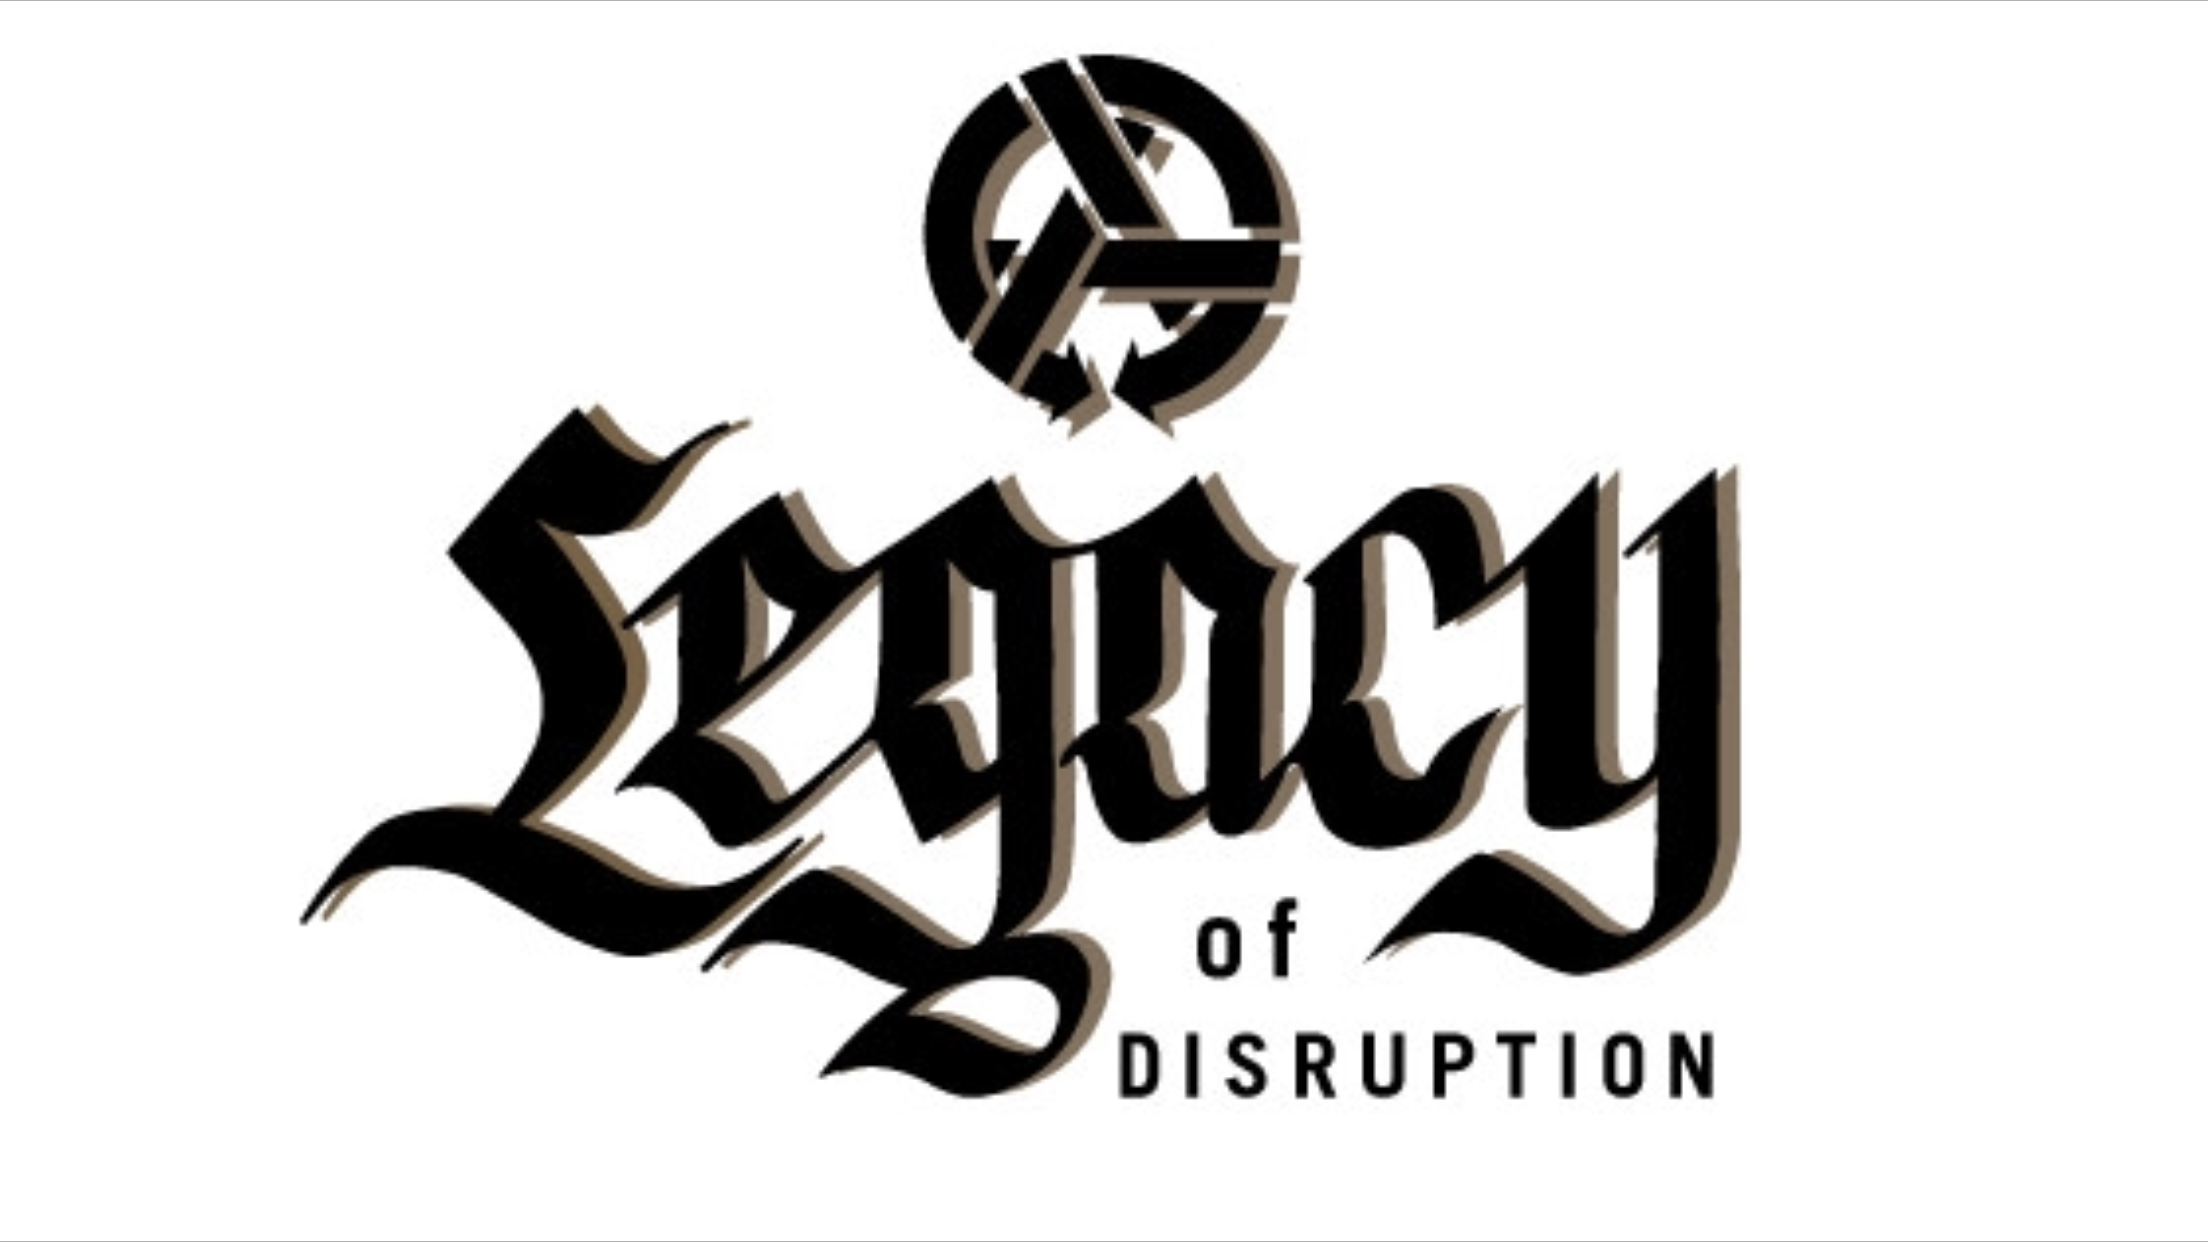 Asymbol's 'Legacy of disruption'